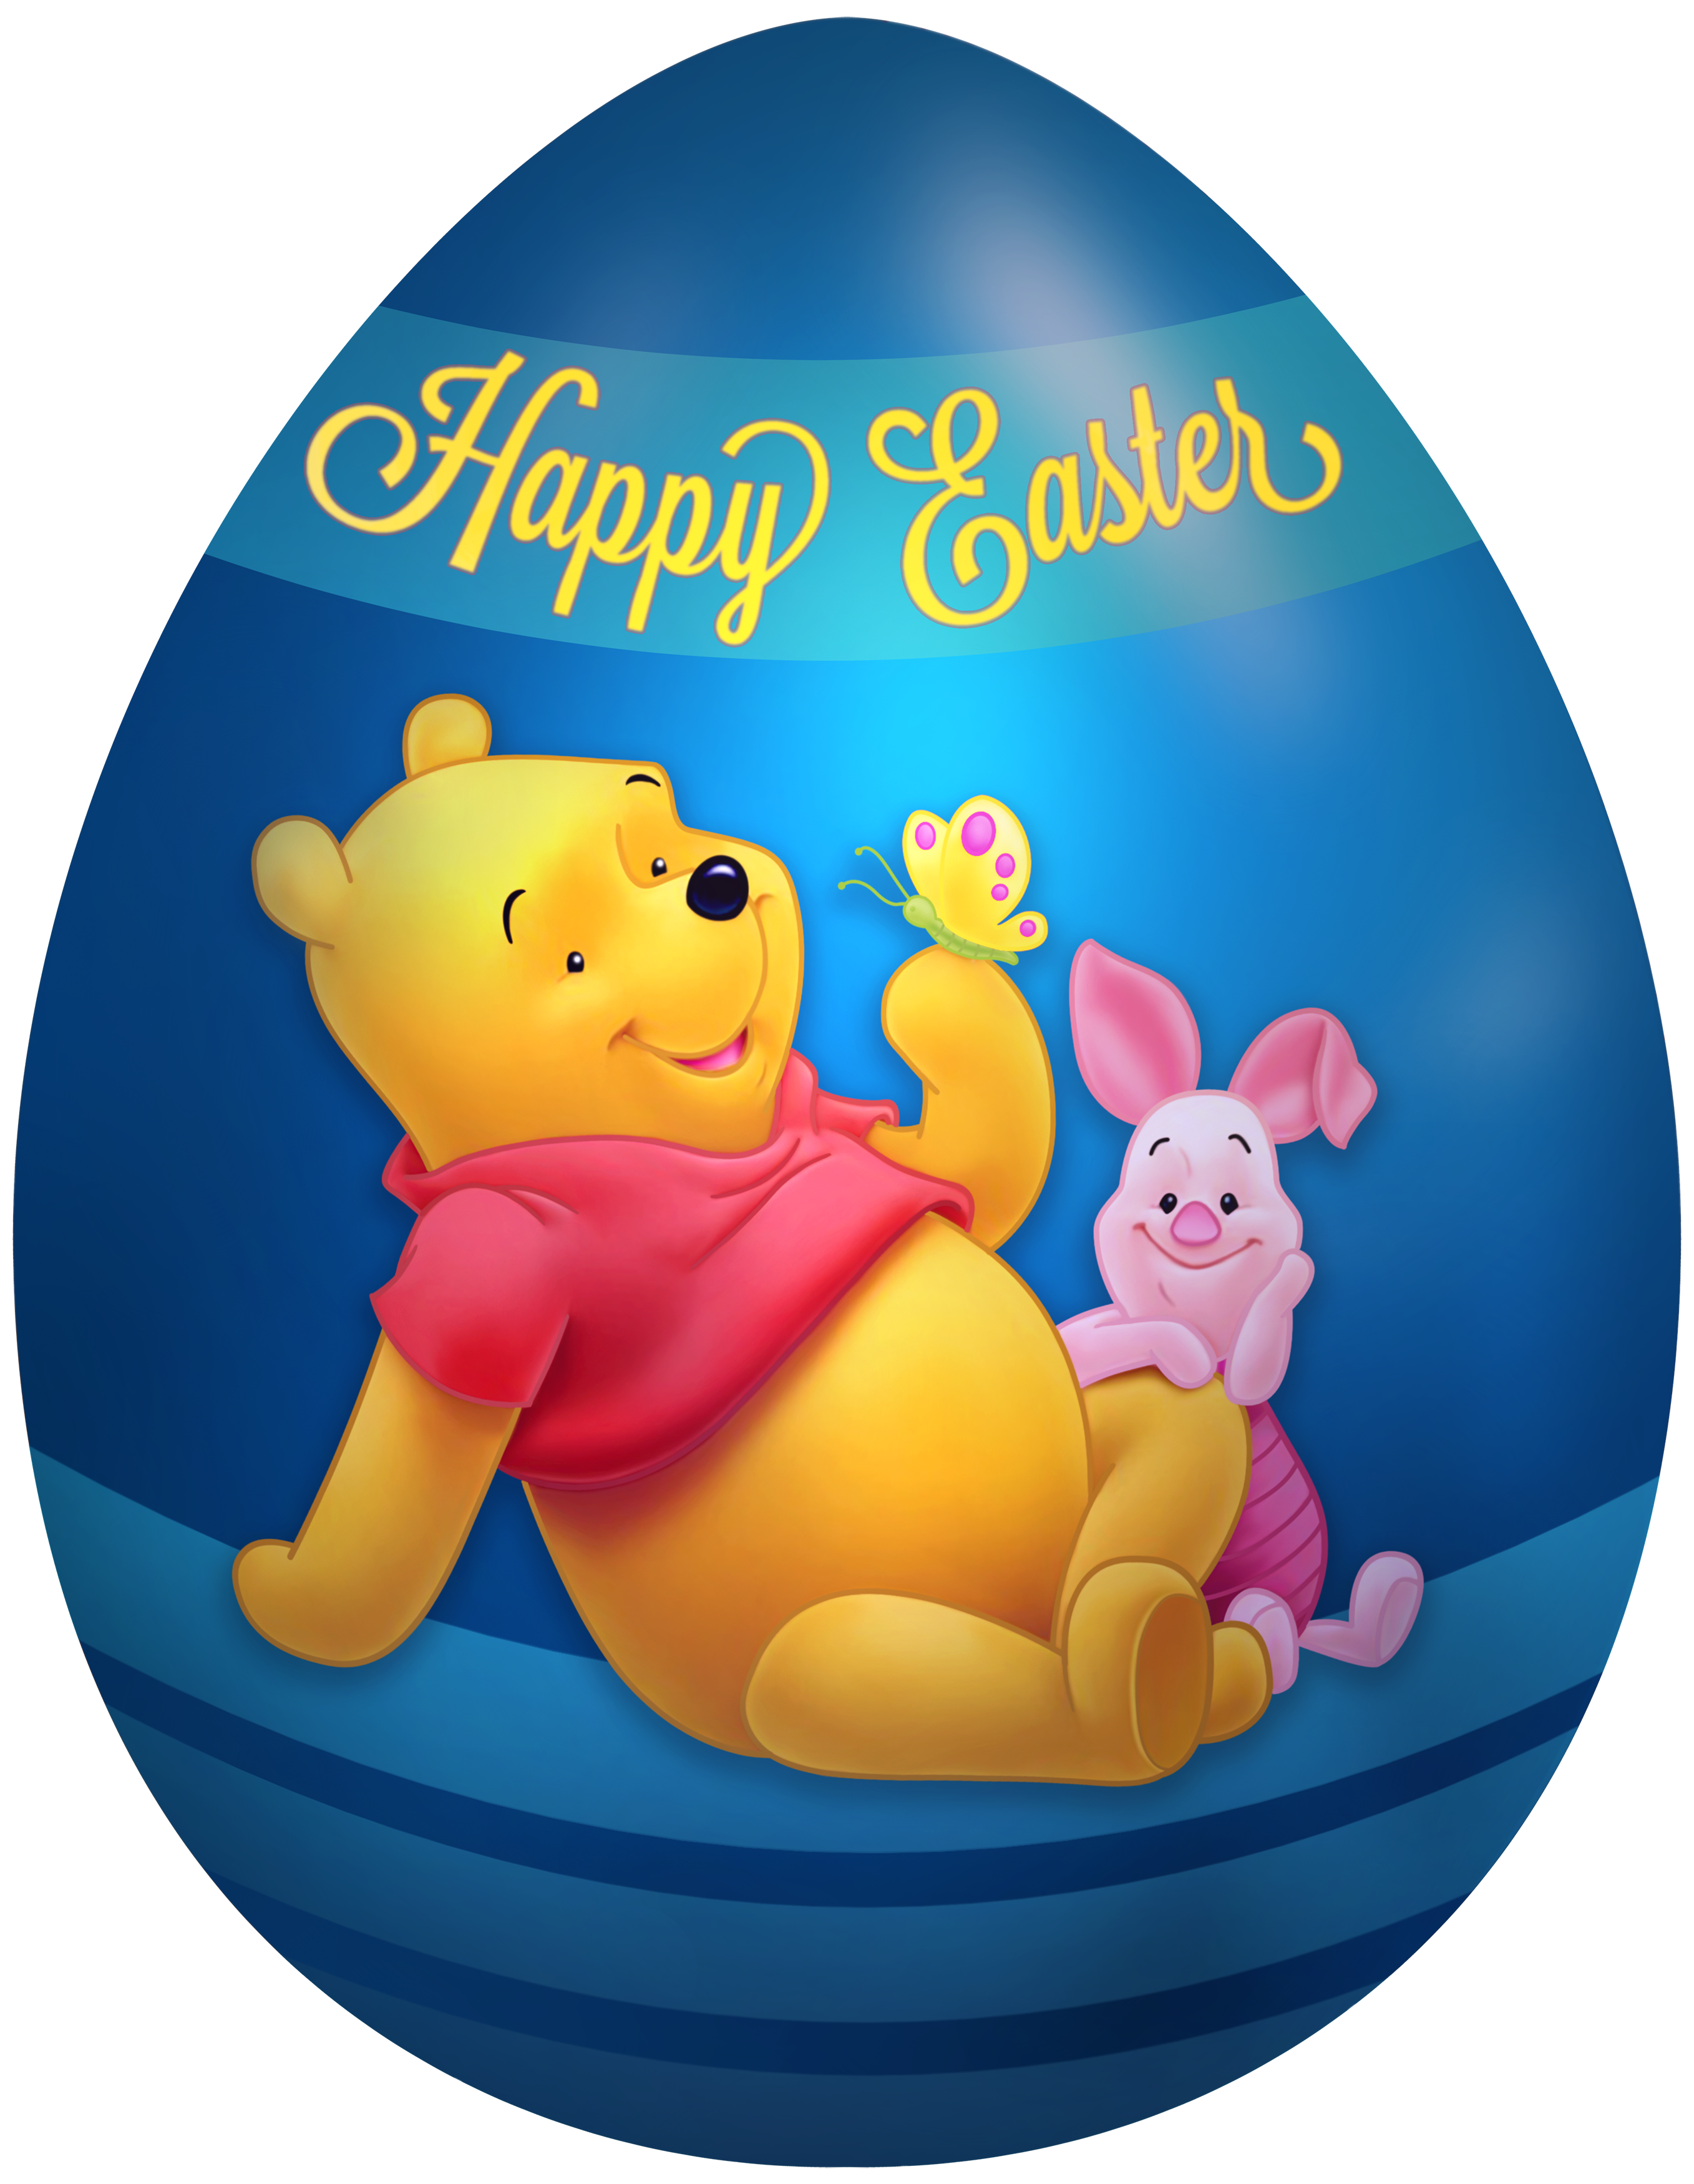 2715x3500 Kids Easter Egg Winnie The Pooh And Piglet Png Clip Art Image